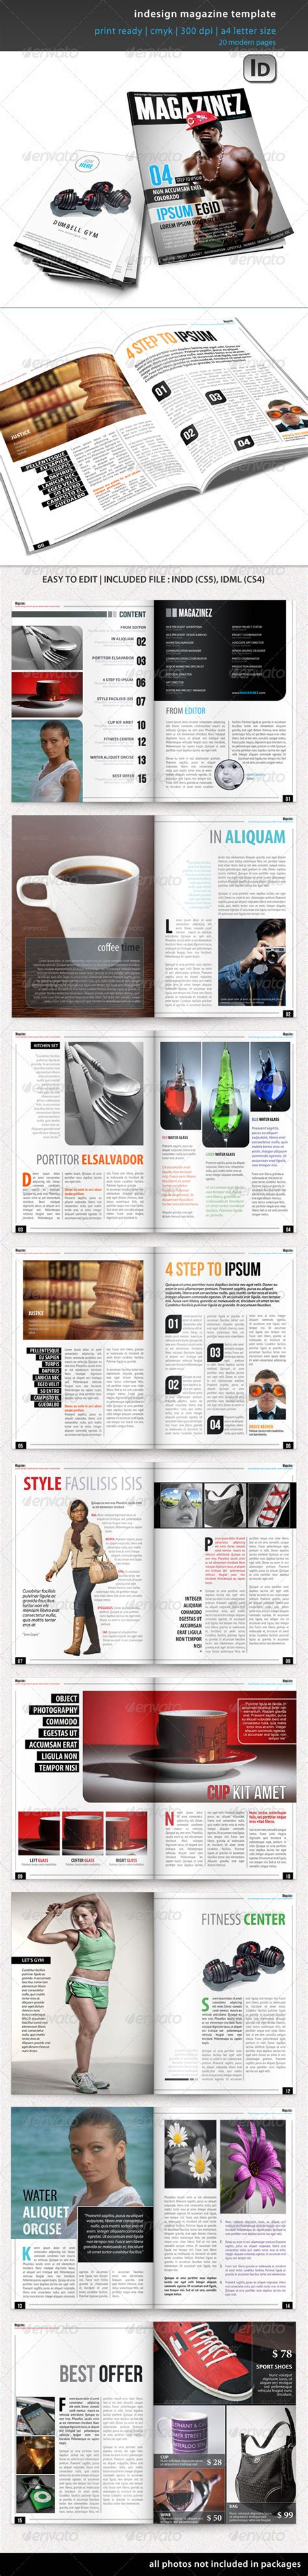 magazine templates for indesign indesign magazine template graphicriver